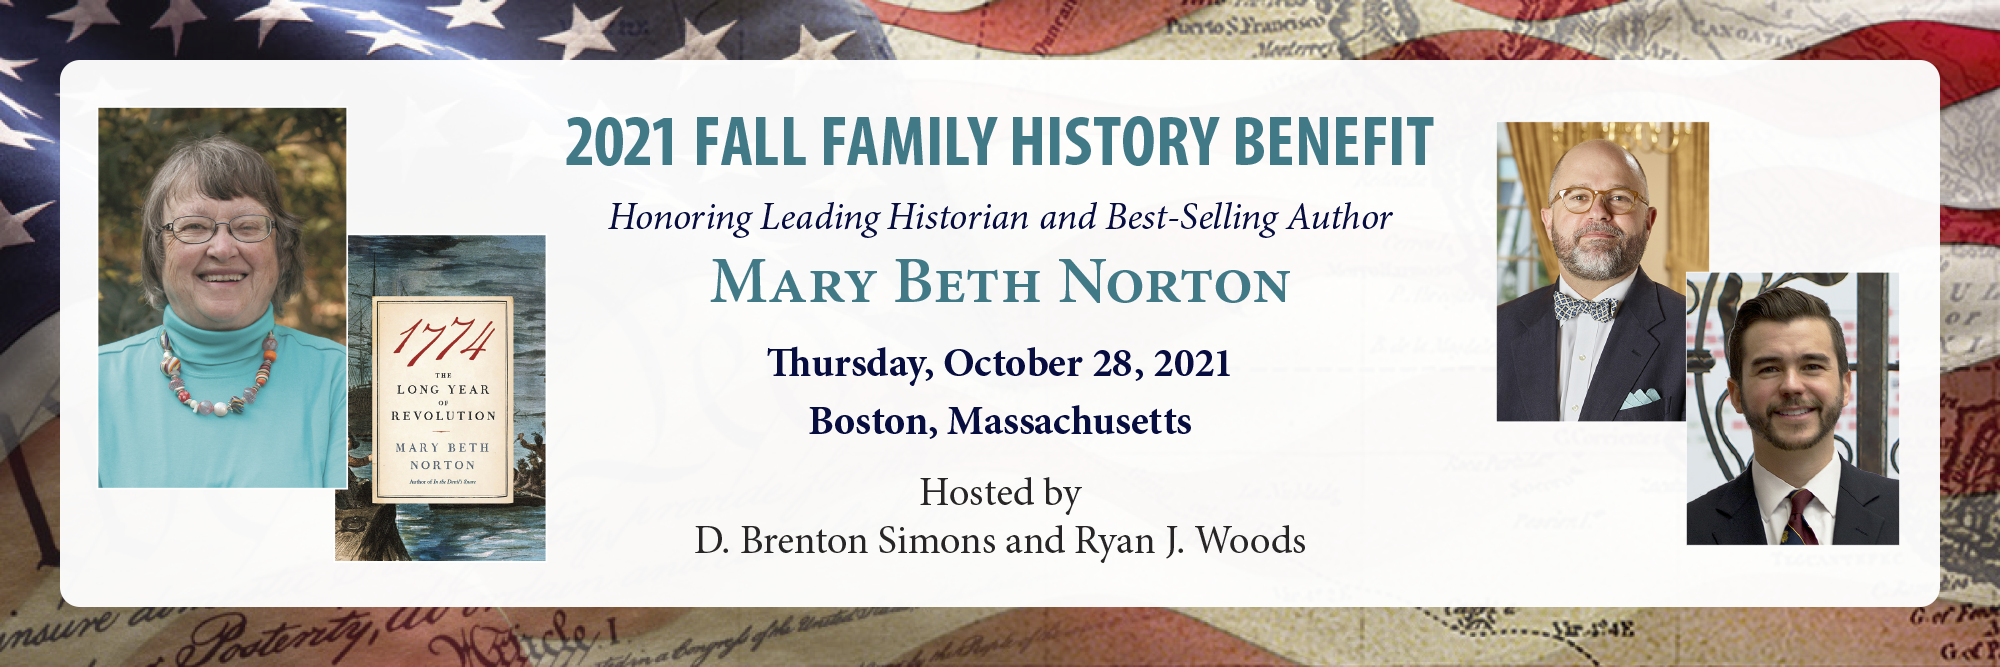 2021 Fall Family History Benefit honoring leading historian and bestselling author Mary Beth Norton, October 28, Boston, MA